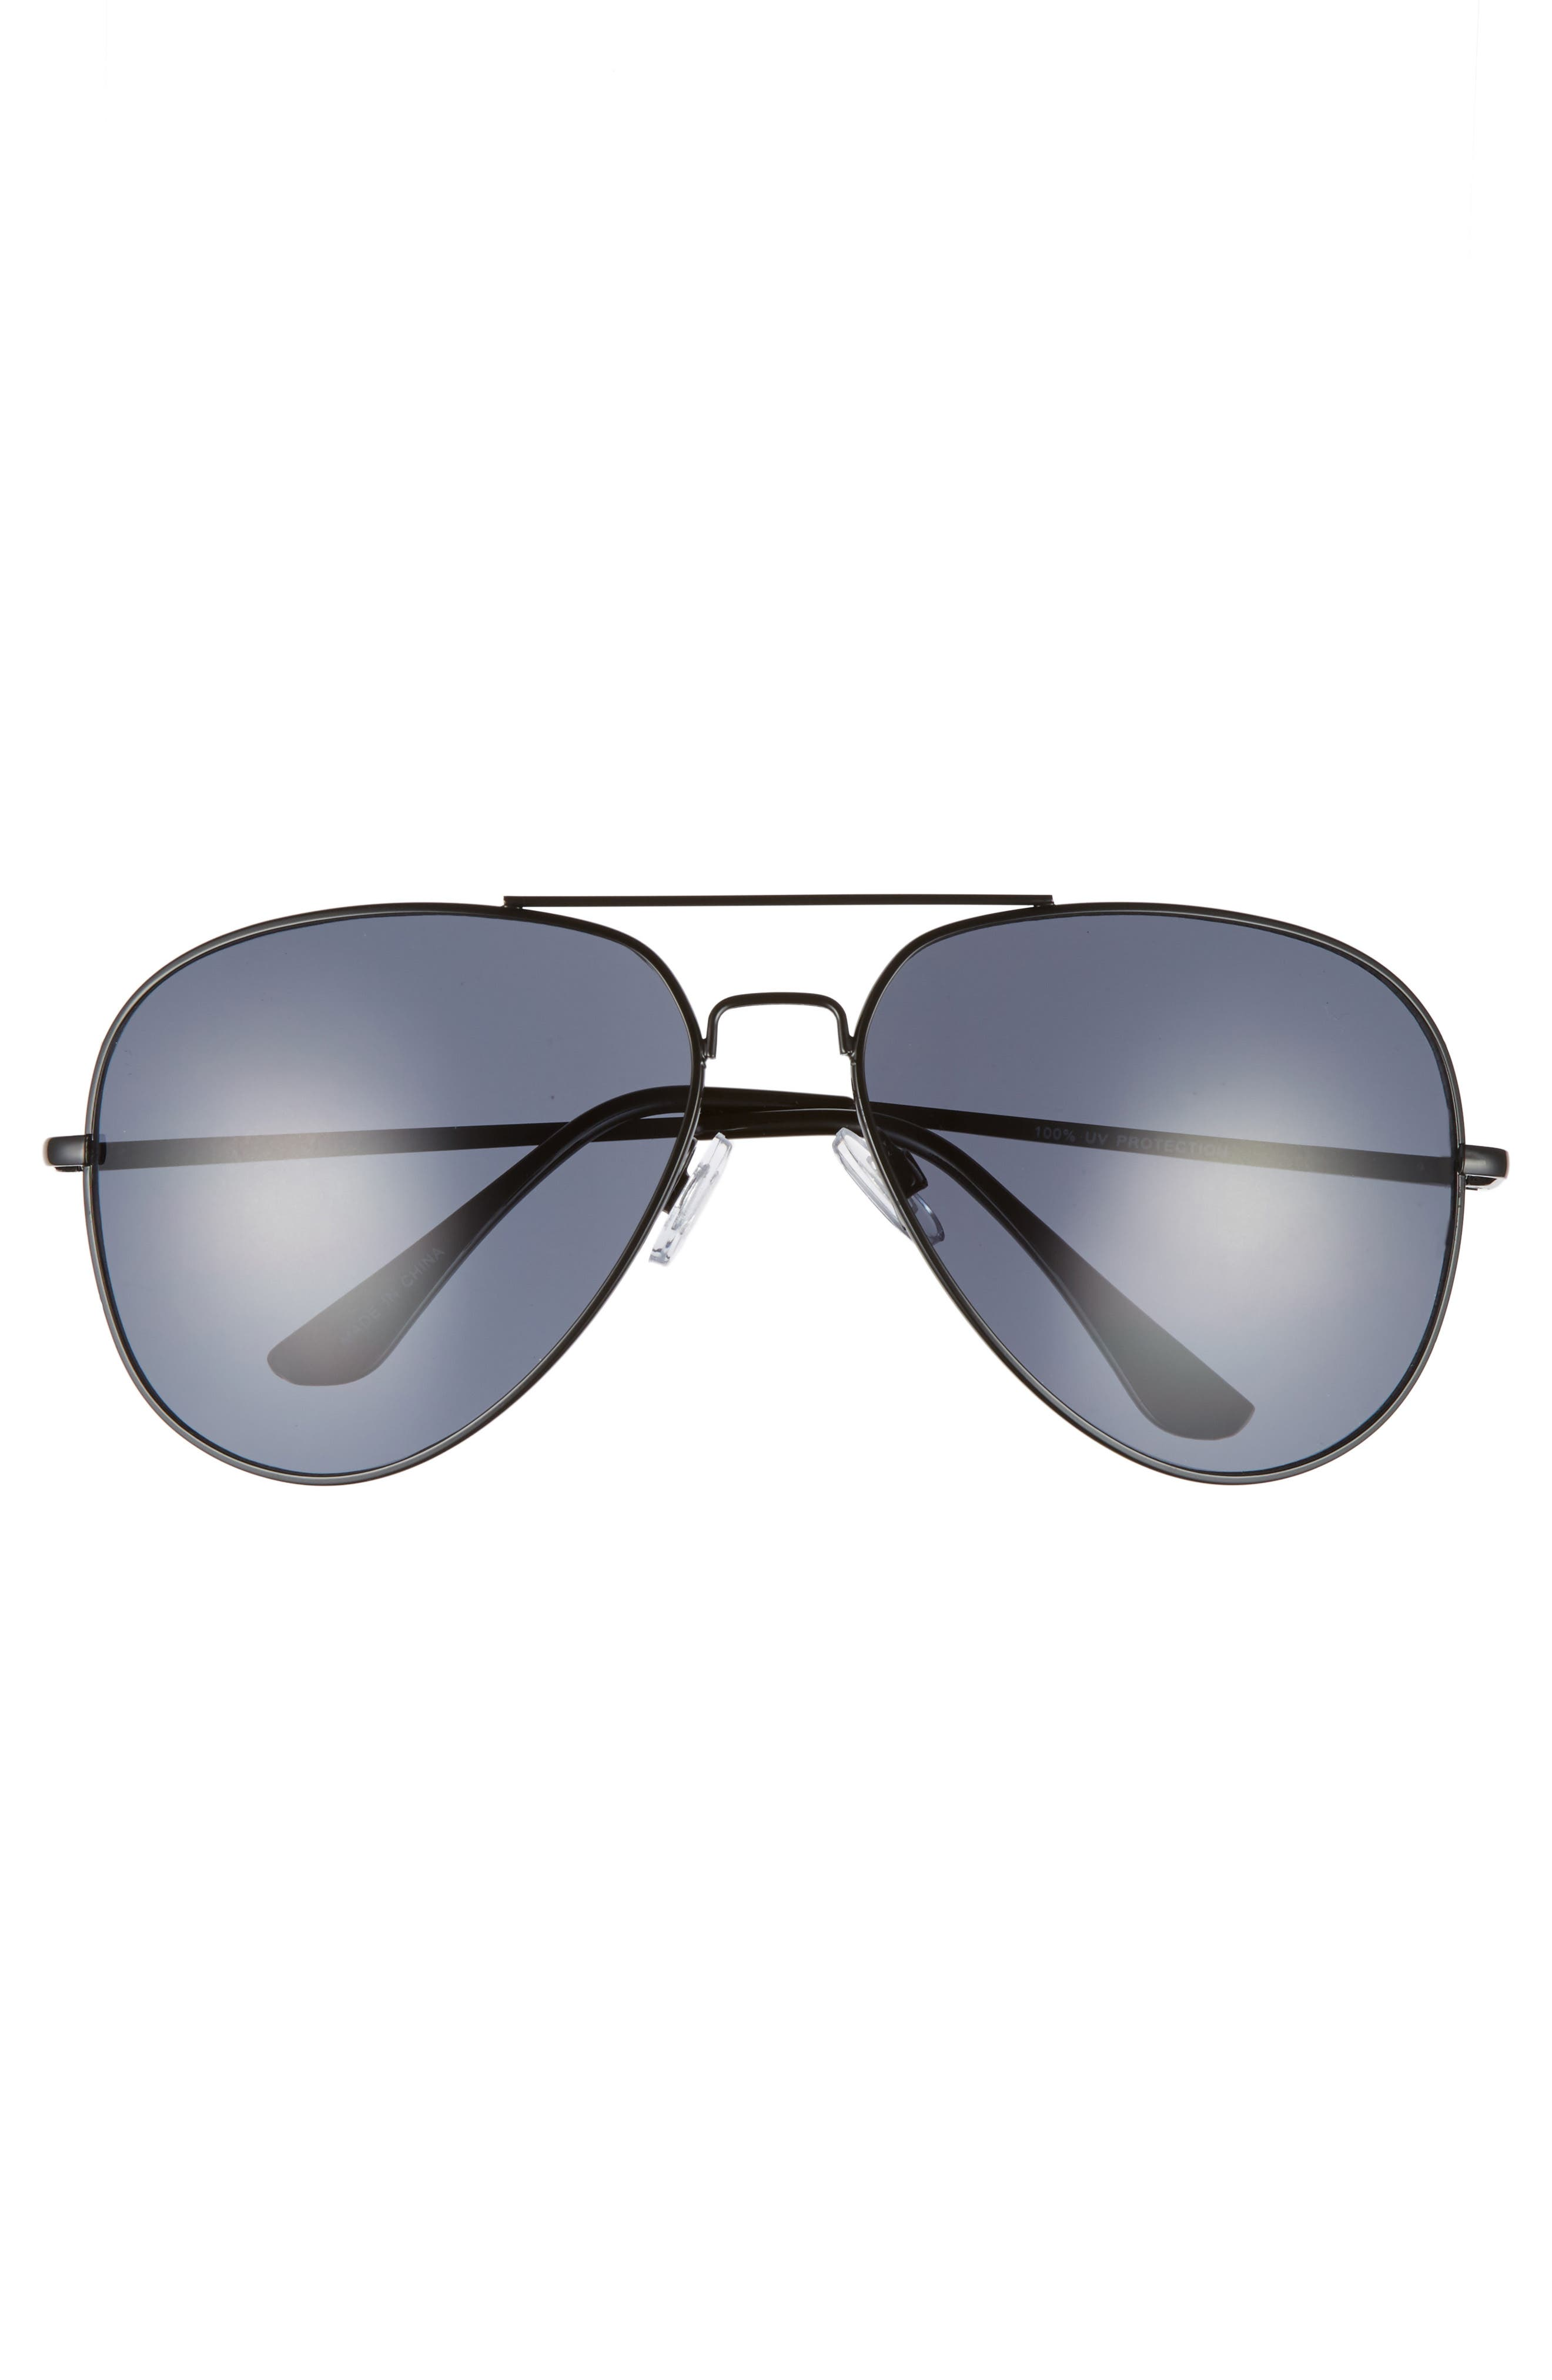 60mm Large Aviator Sunglasses,                             Alternate thumbnail 3, color,                             001